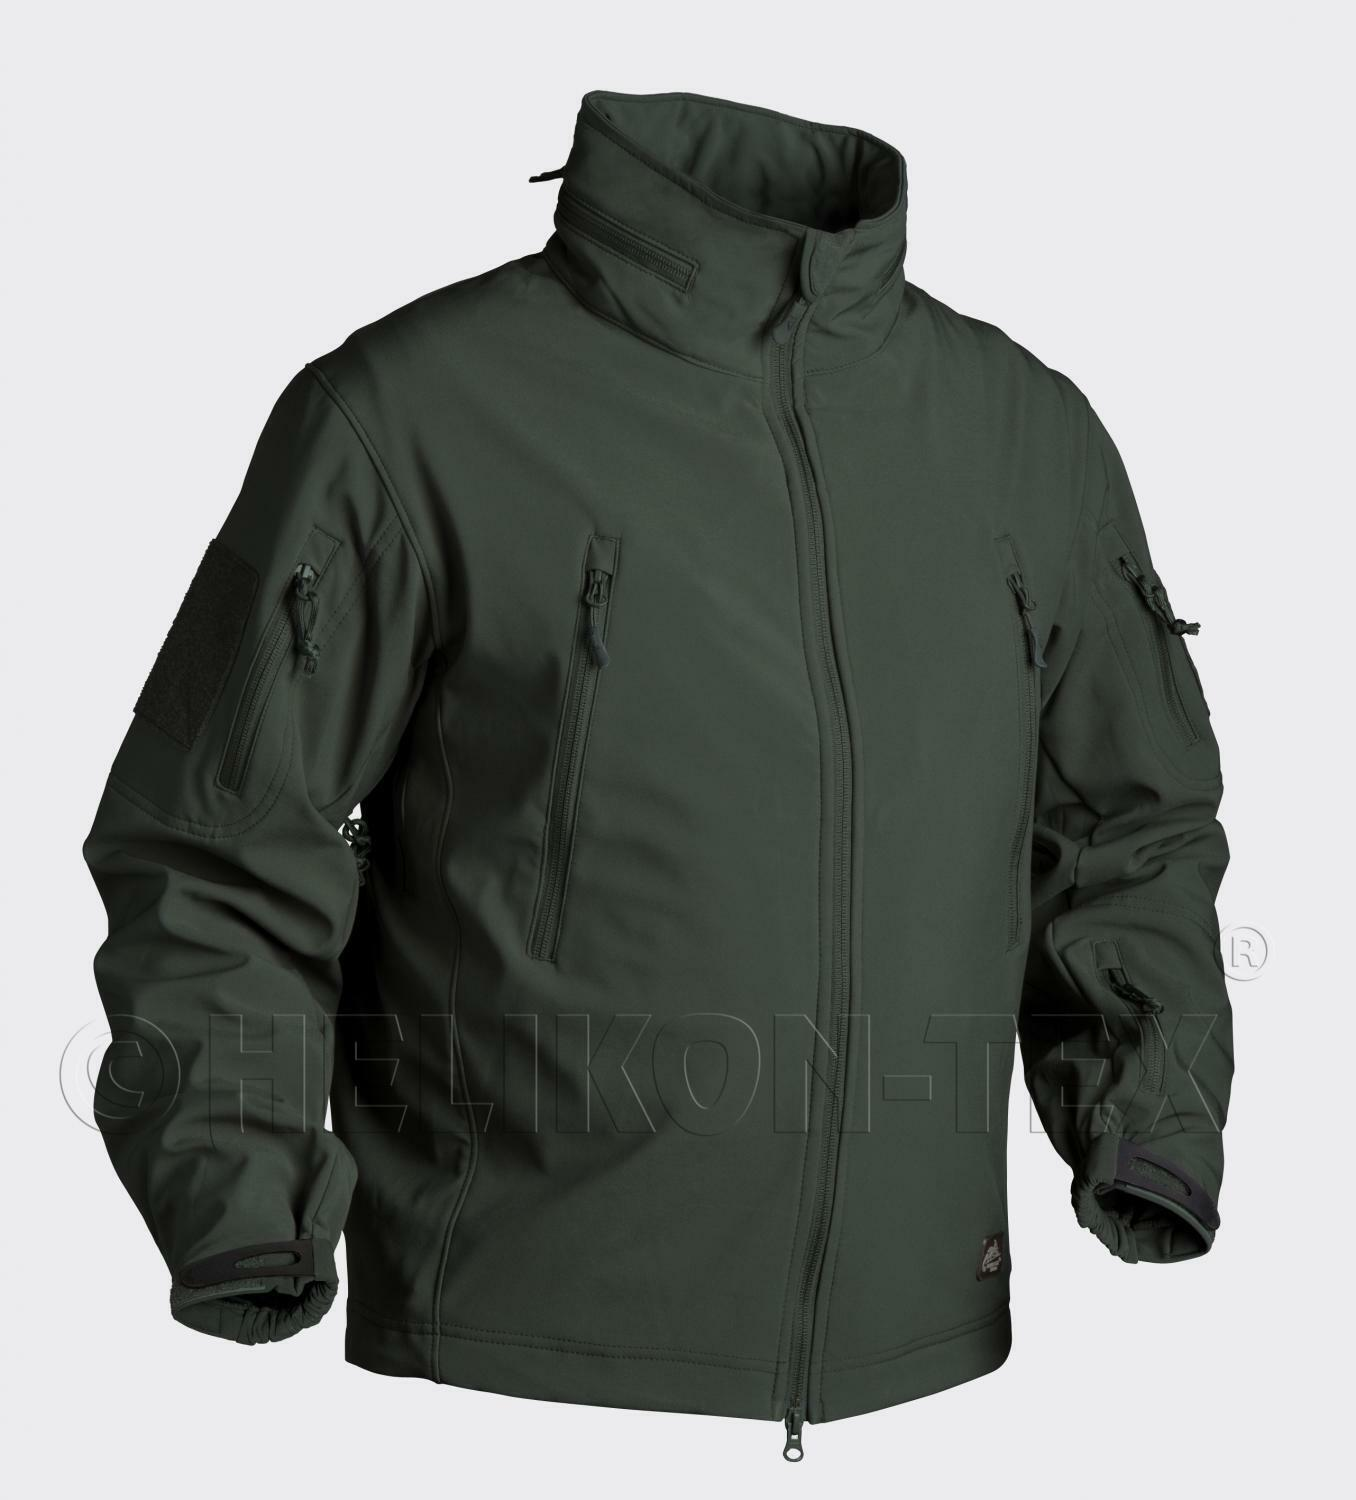 Helikon TEX pistolero Outdoor Softshell Giacca Giacca Giacca in pile JUNGLE verde SSmtutti eae